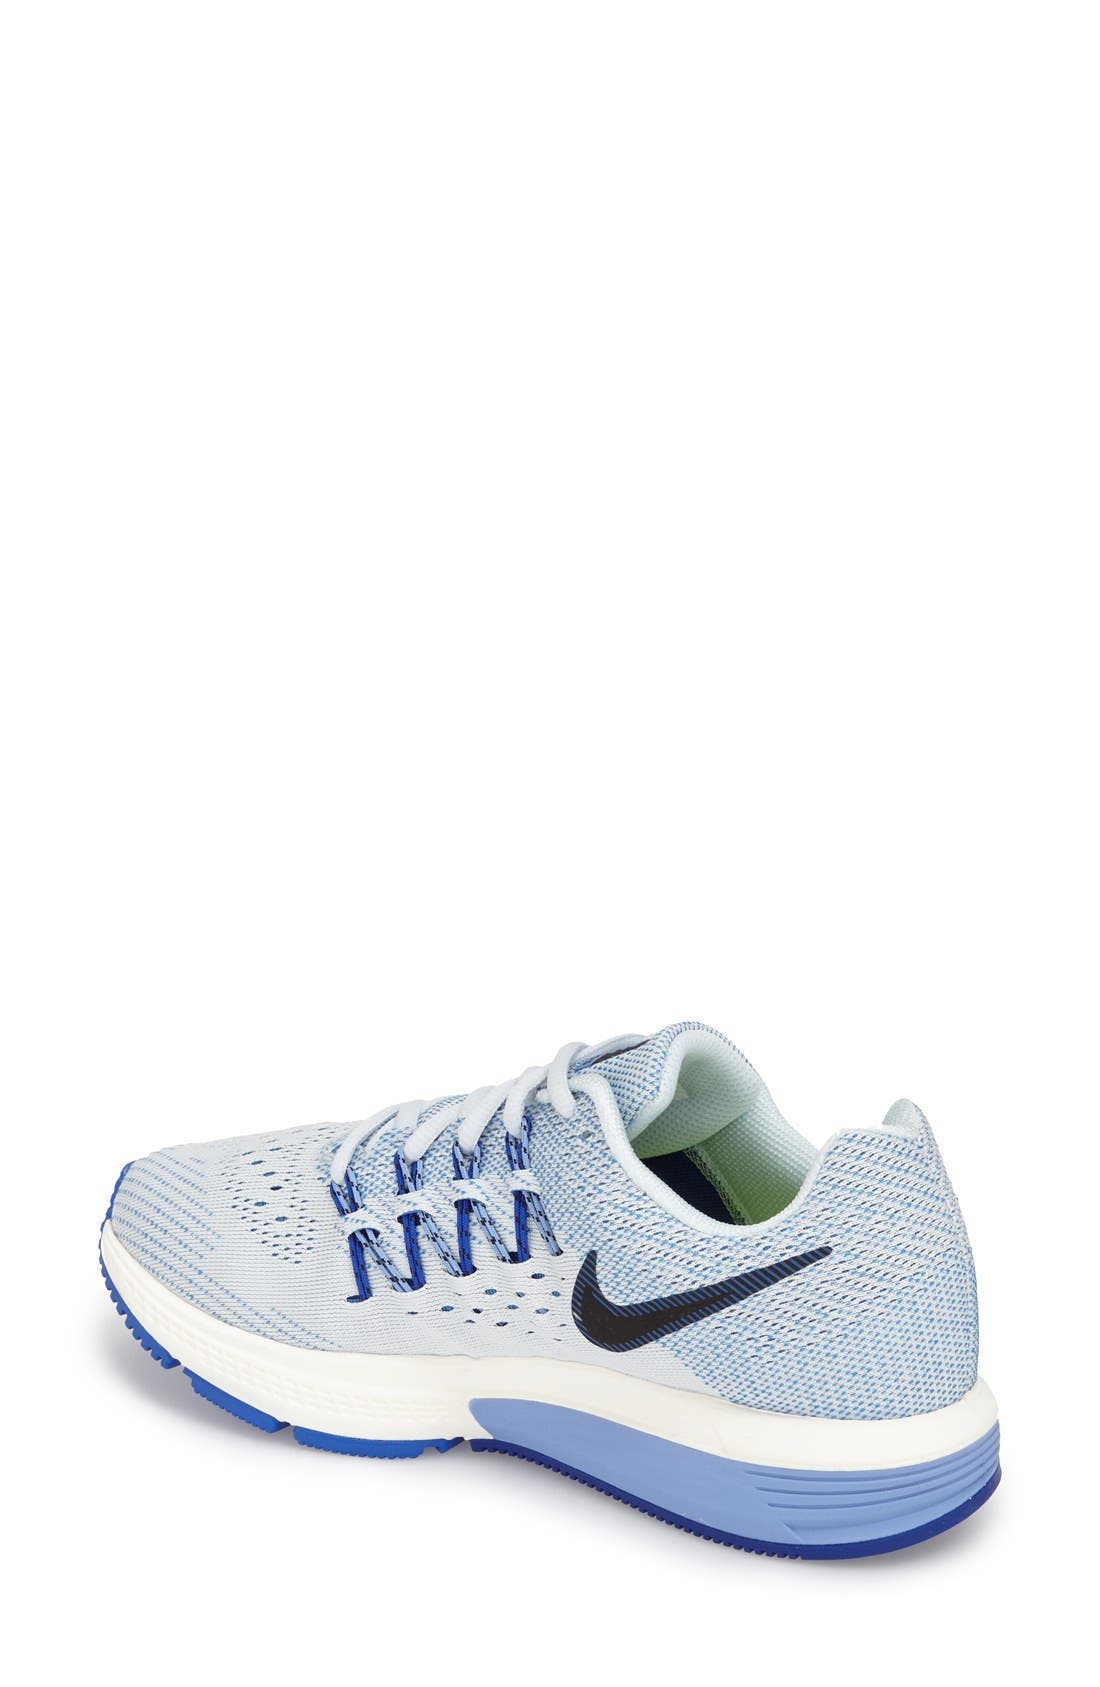 Alternate Image 2  - Nike 'Air Zoom Vomero 10' Running Shoe (Women)